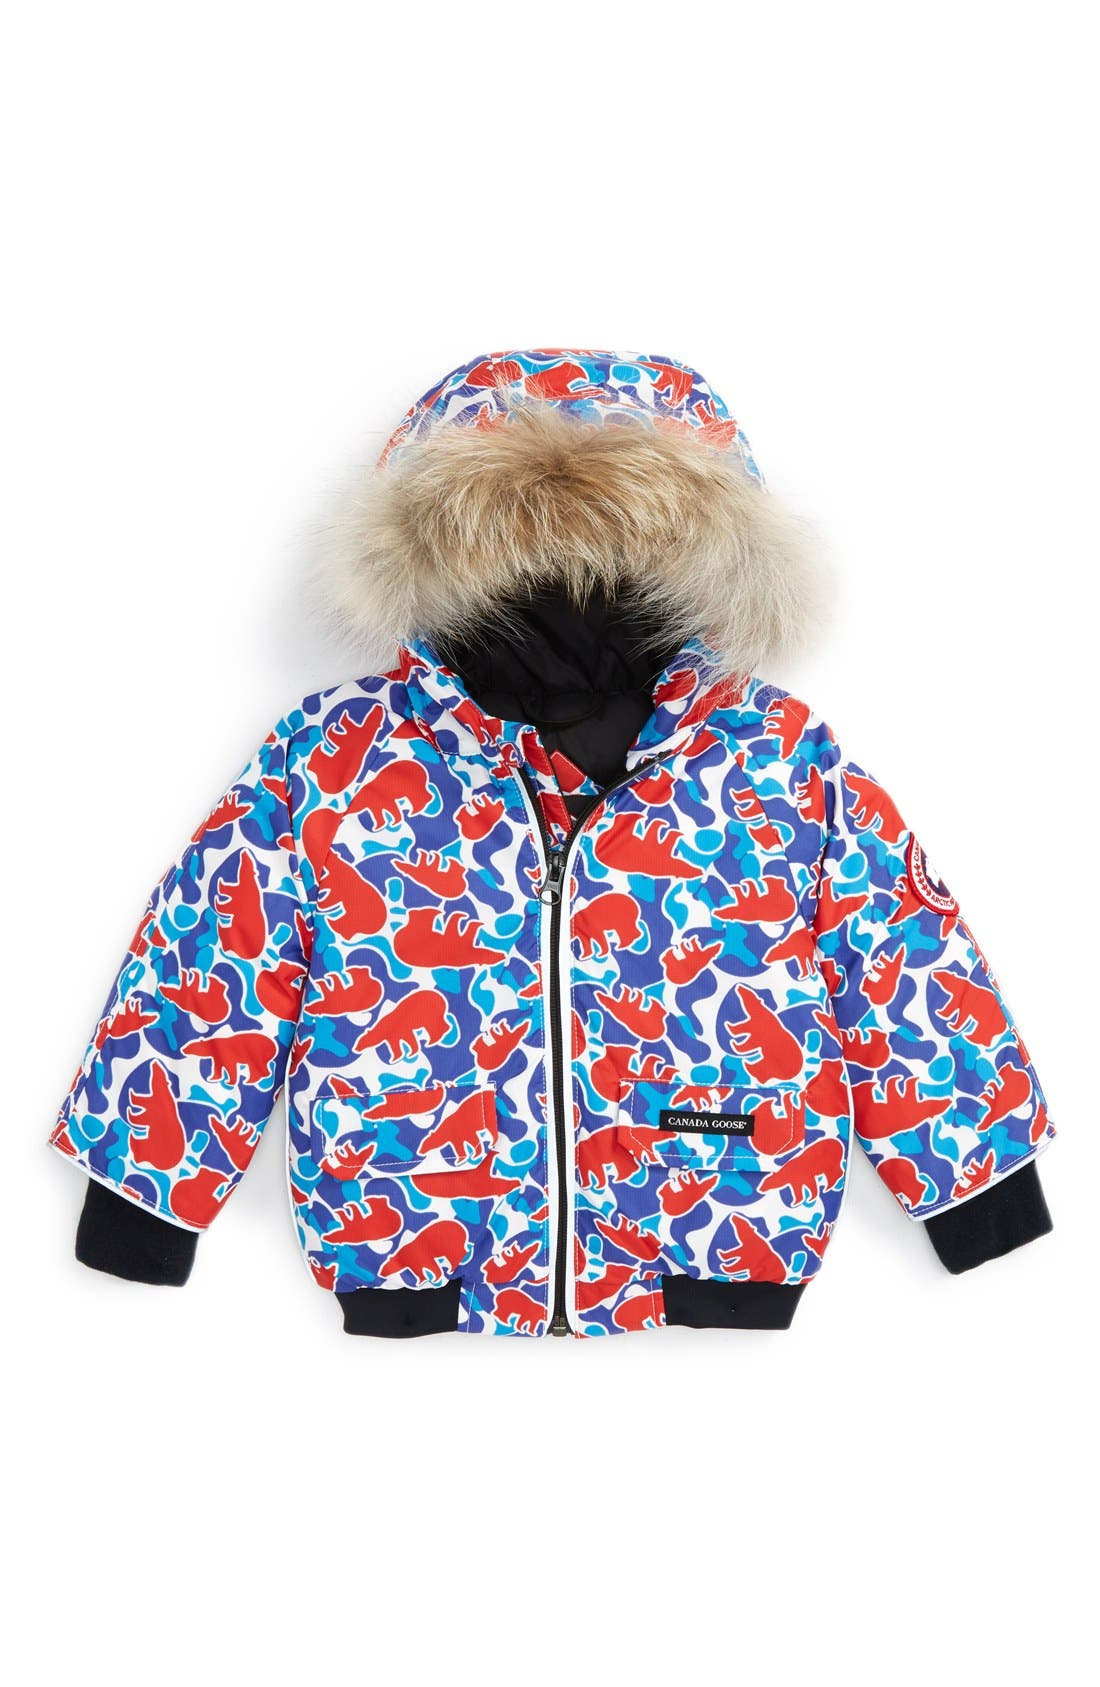 Alternate Image 1 Selected - Canada Goose 'Elijah' Down Bomber Jacket with Genuine Coyote Fur Trim (Baby)